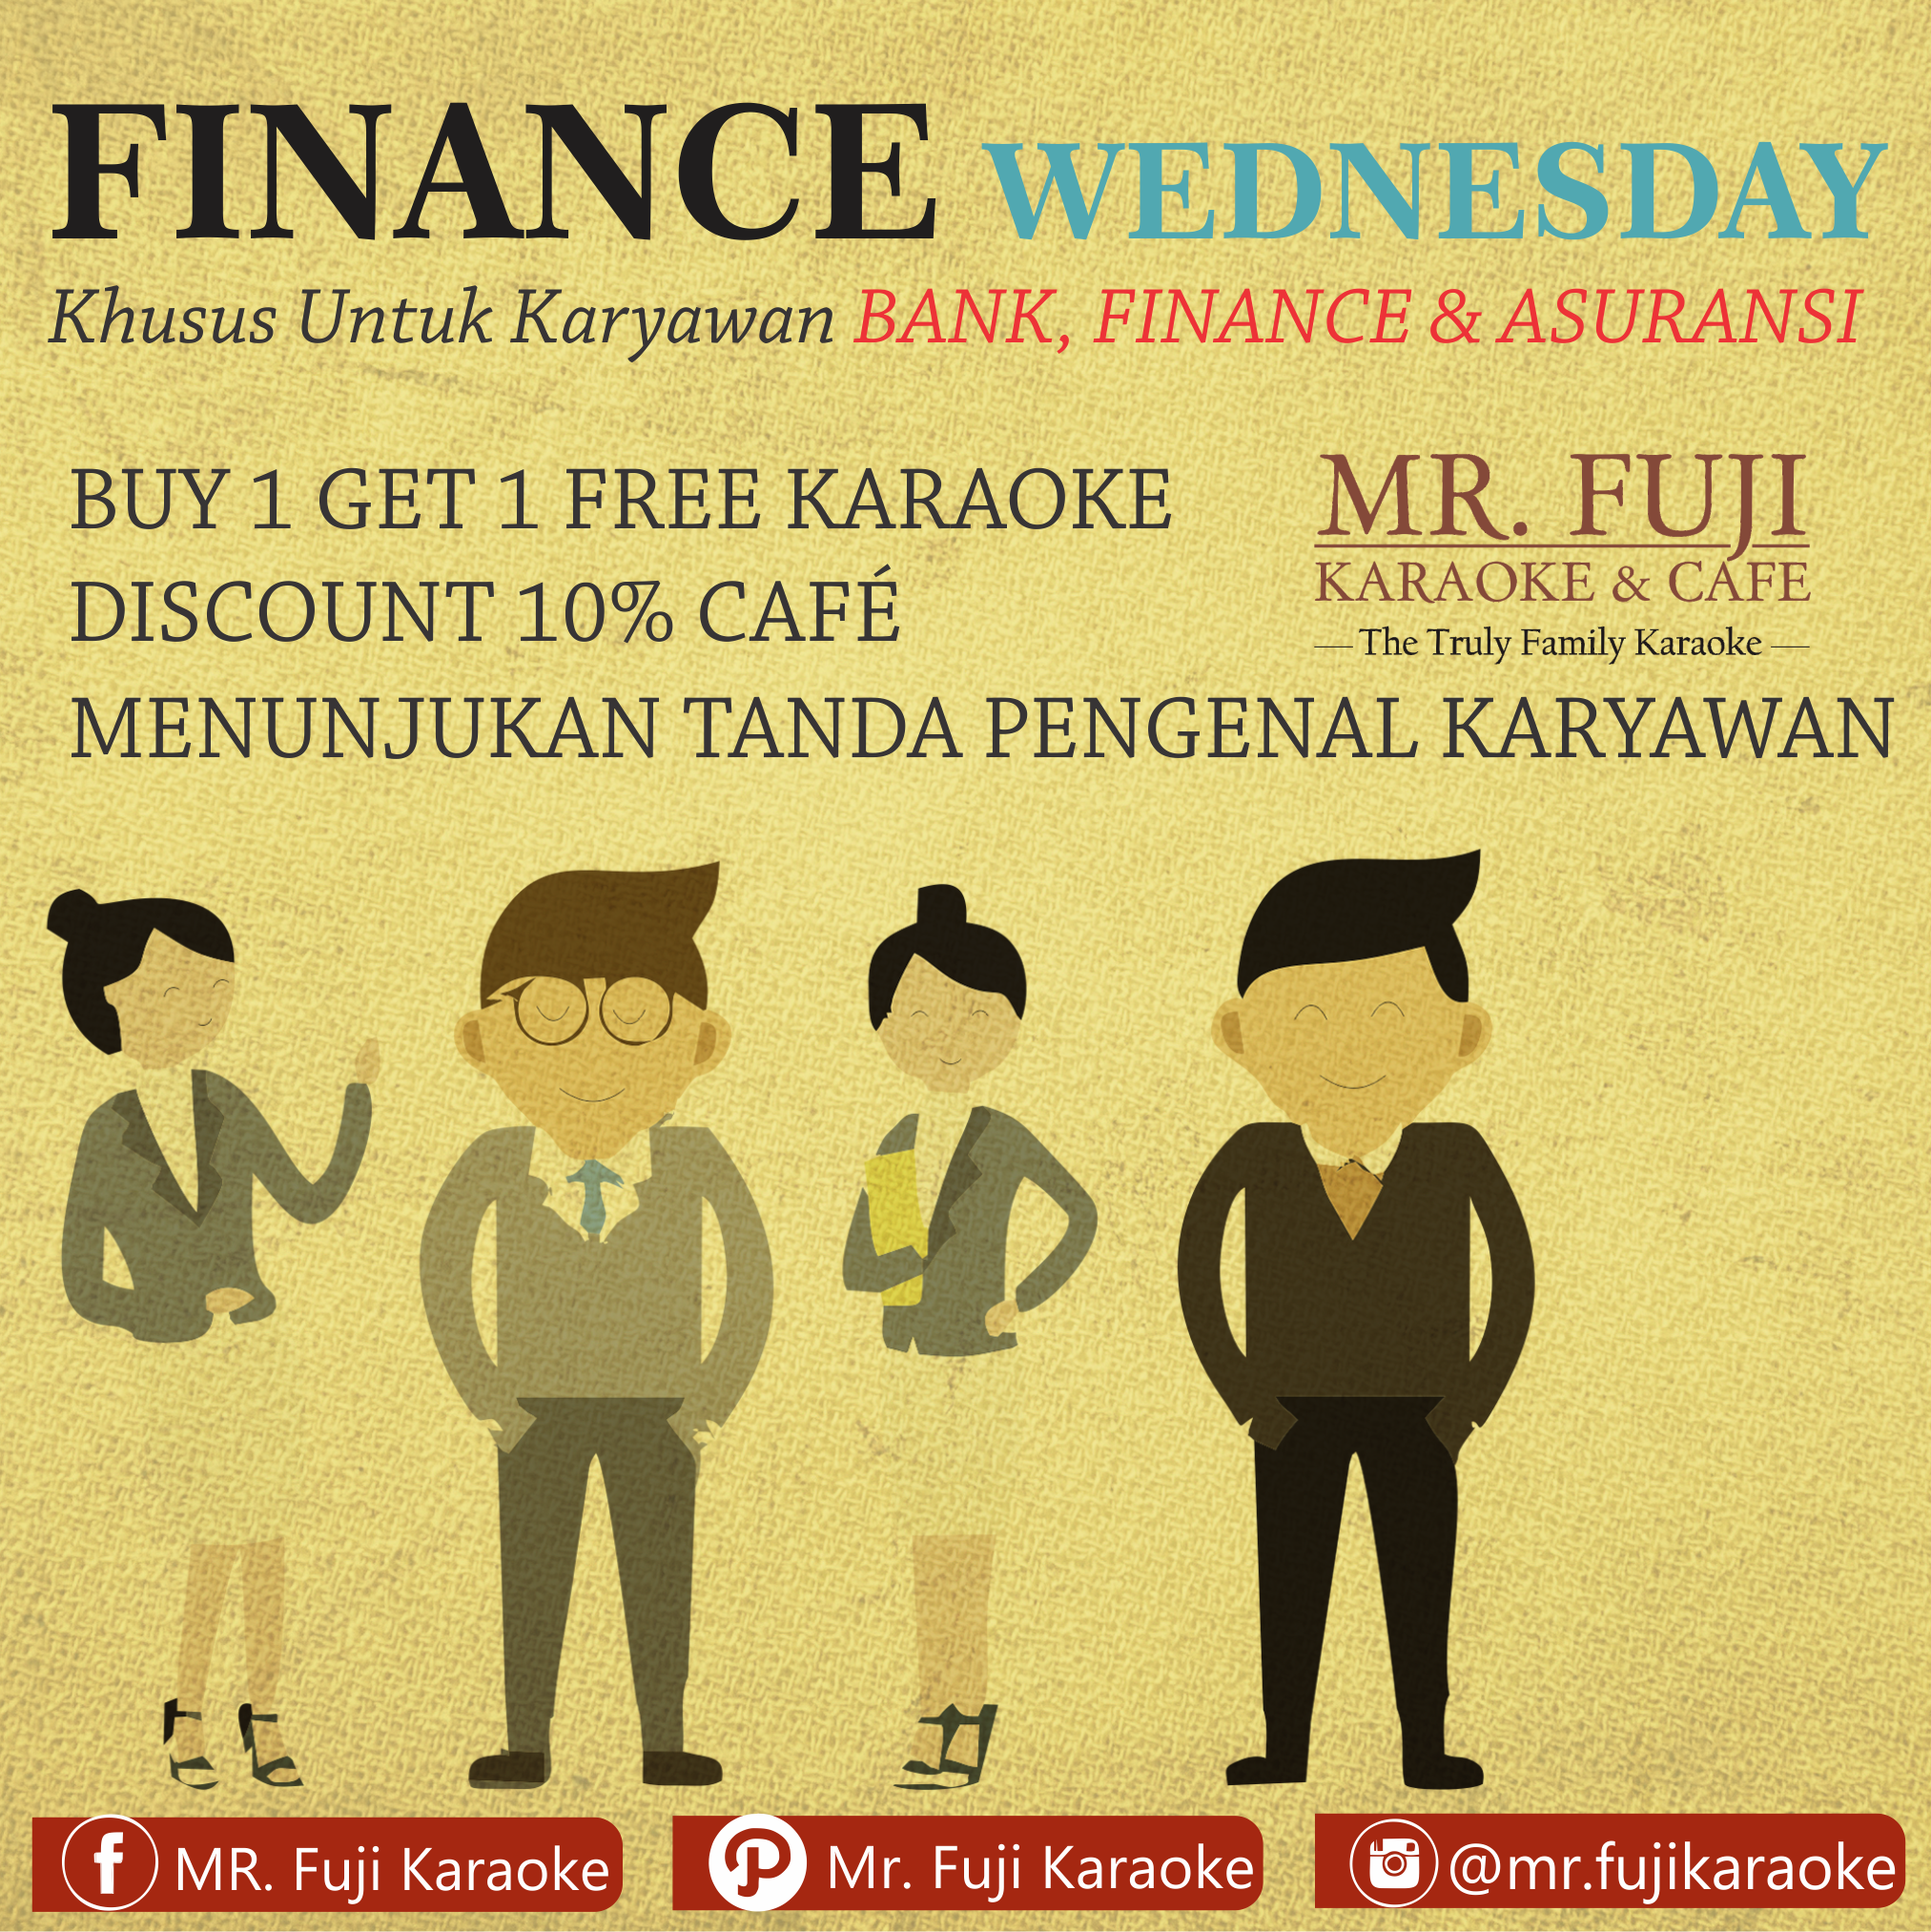 Promo Tempat Karaoke Keluarga MR Fuji Karaoke n Cafe Financial Wednesday Rabu